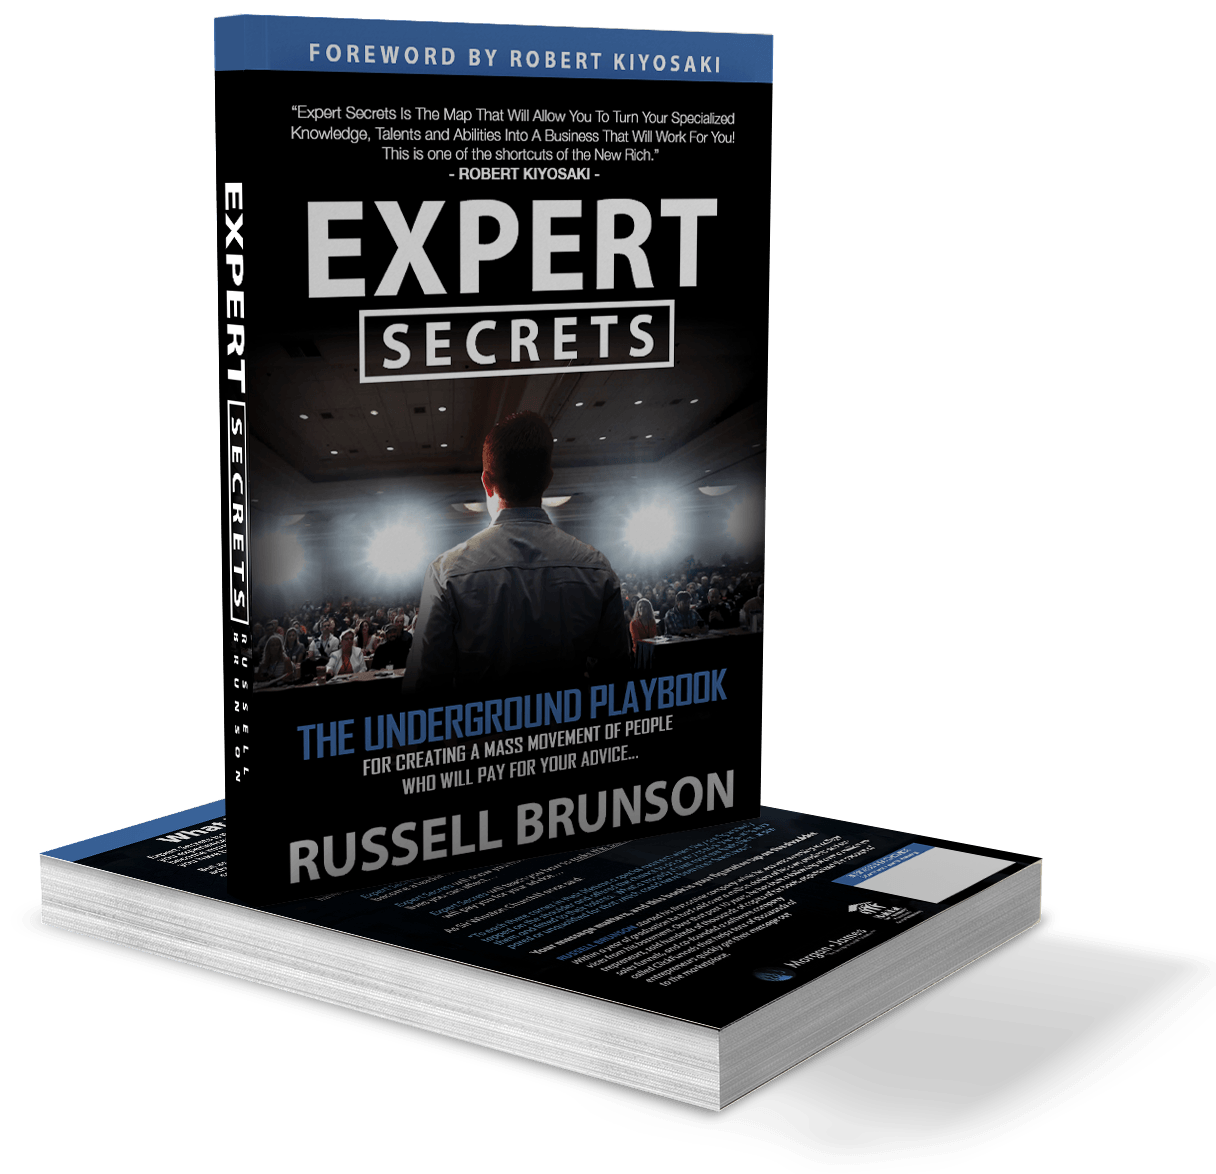 expert secrets by russell brunson